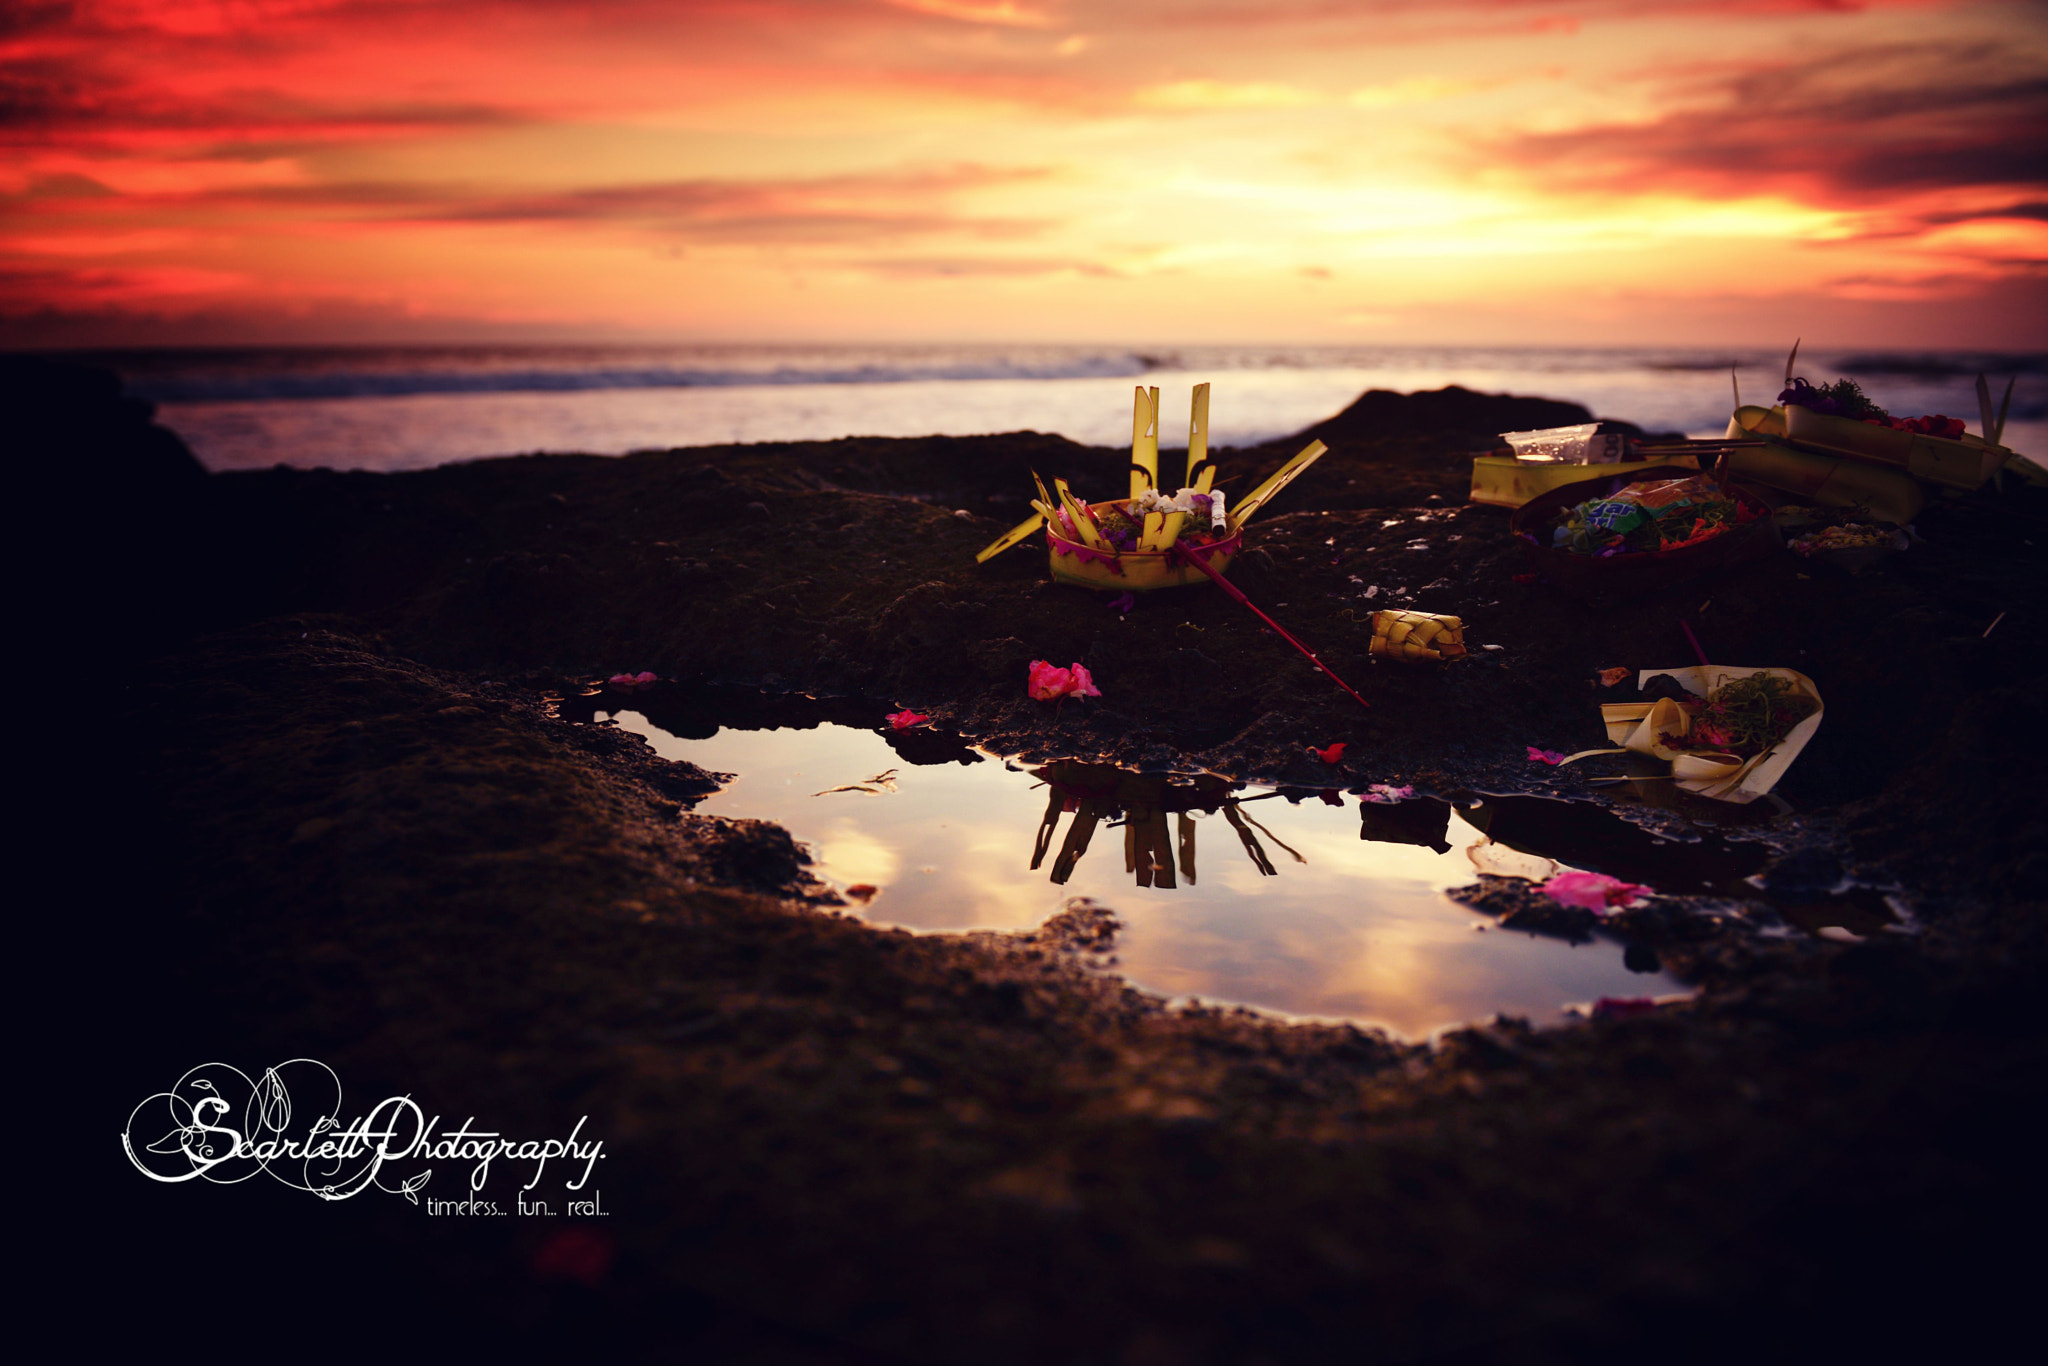 Photograph BALI by Amy Stengert on 500px